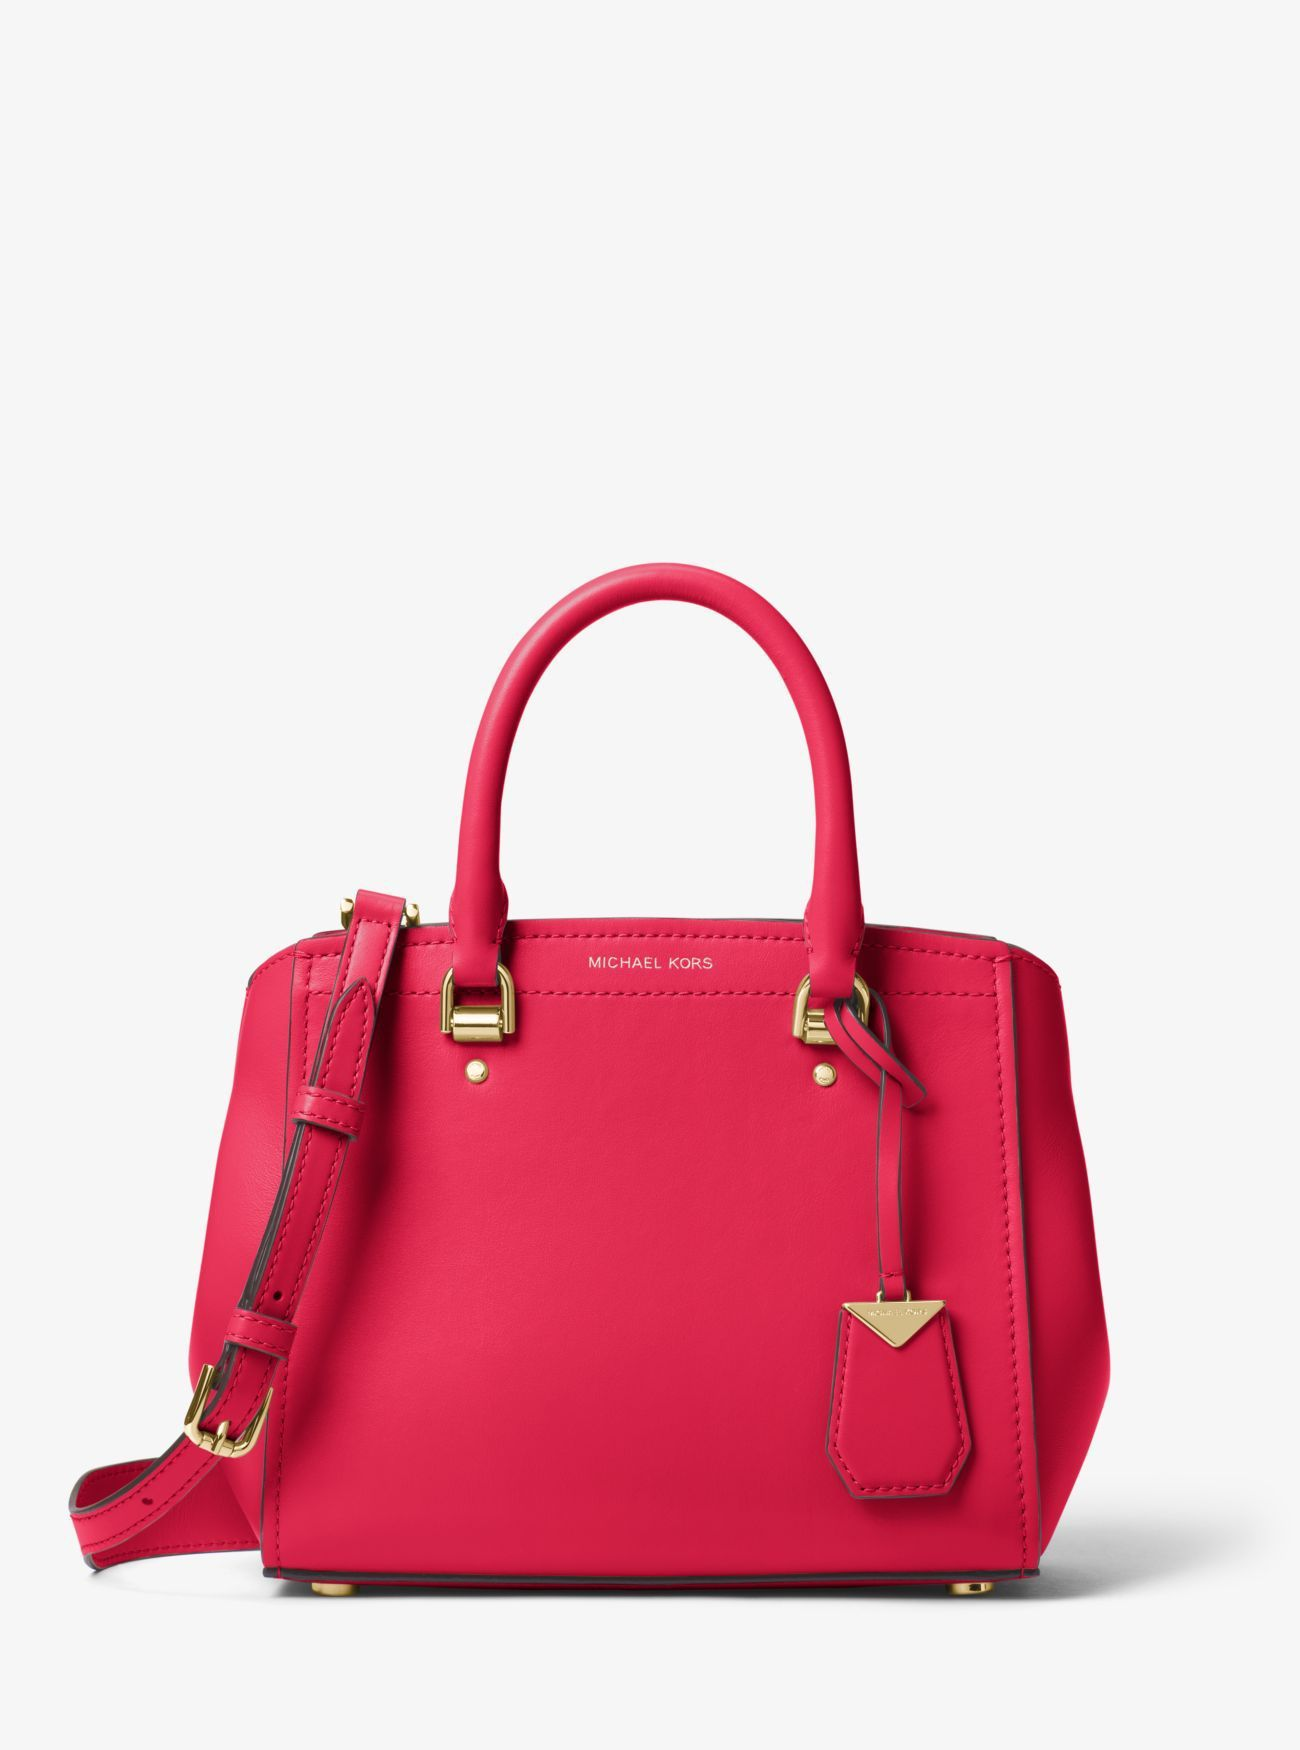 e8358459b470 Michael Kors Handbags Are on Up to 75% Off for a Labor Day Sale